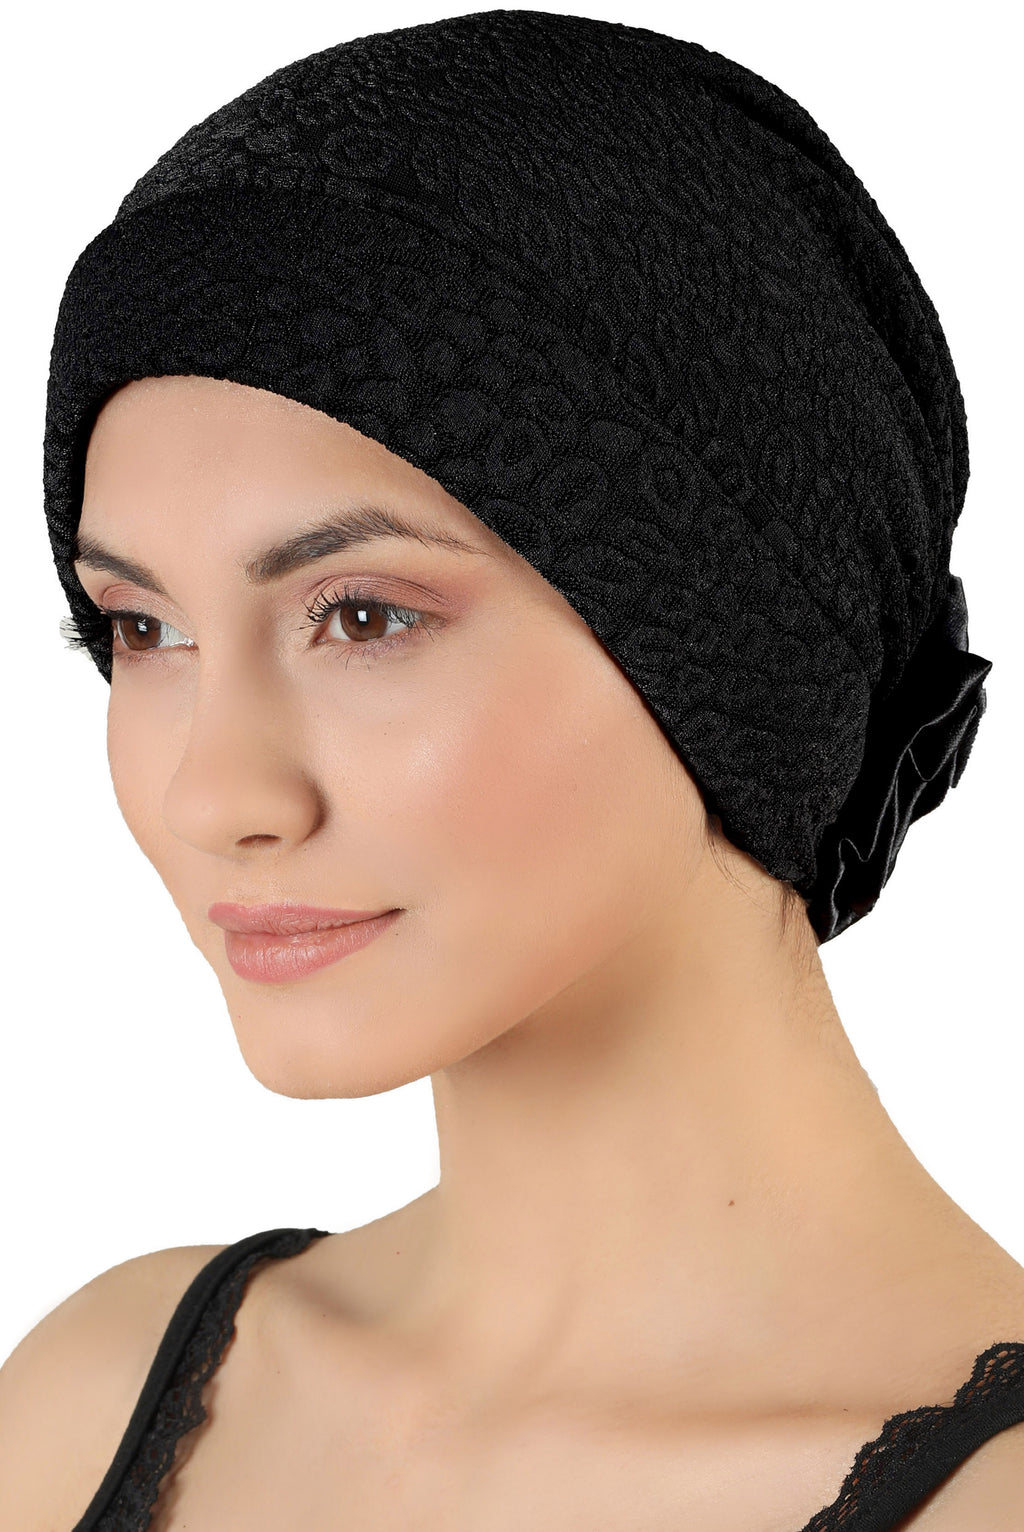 Brocade Headwear with Satin Rose - Padded Front Black